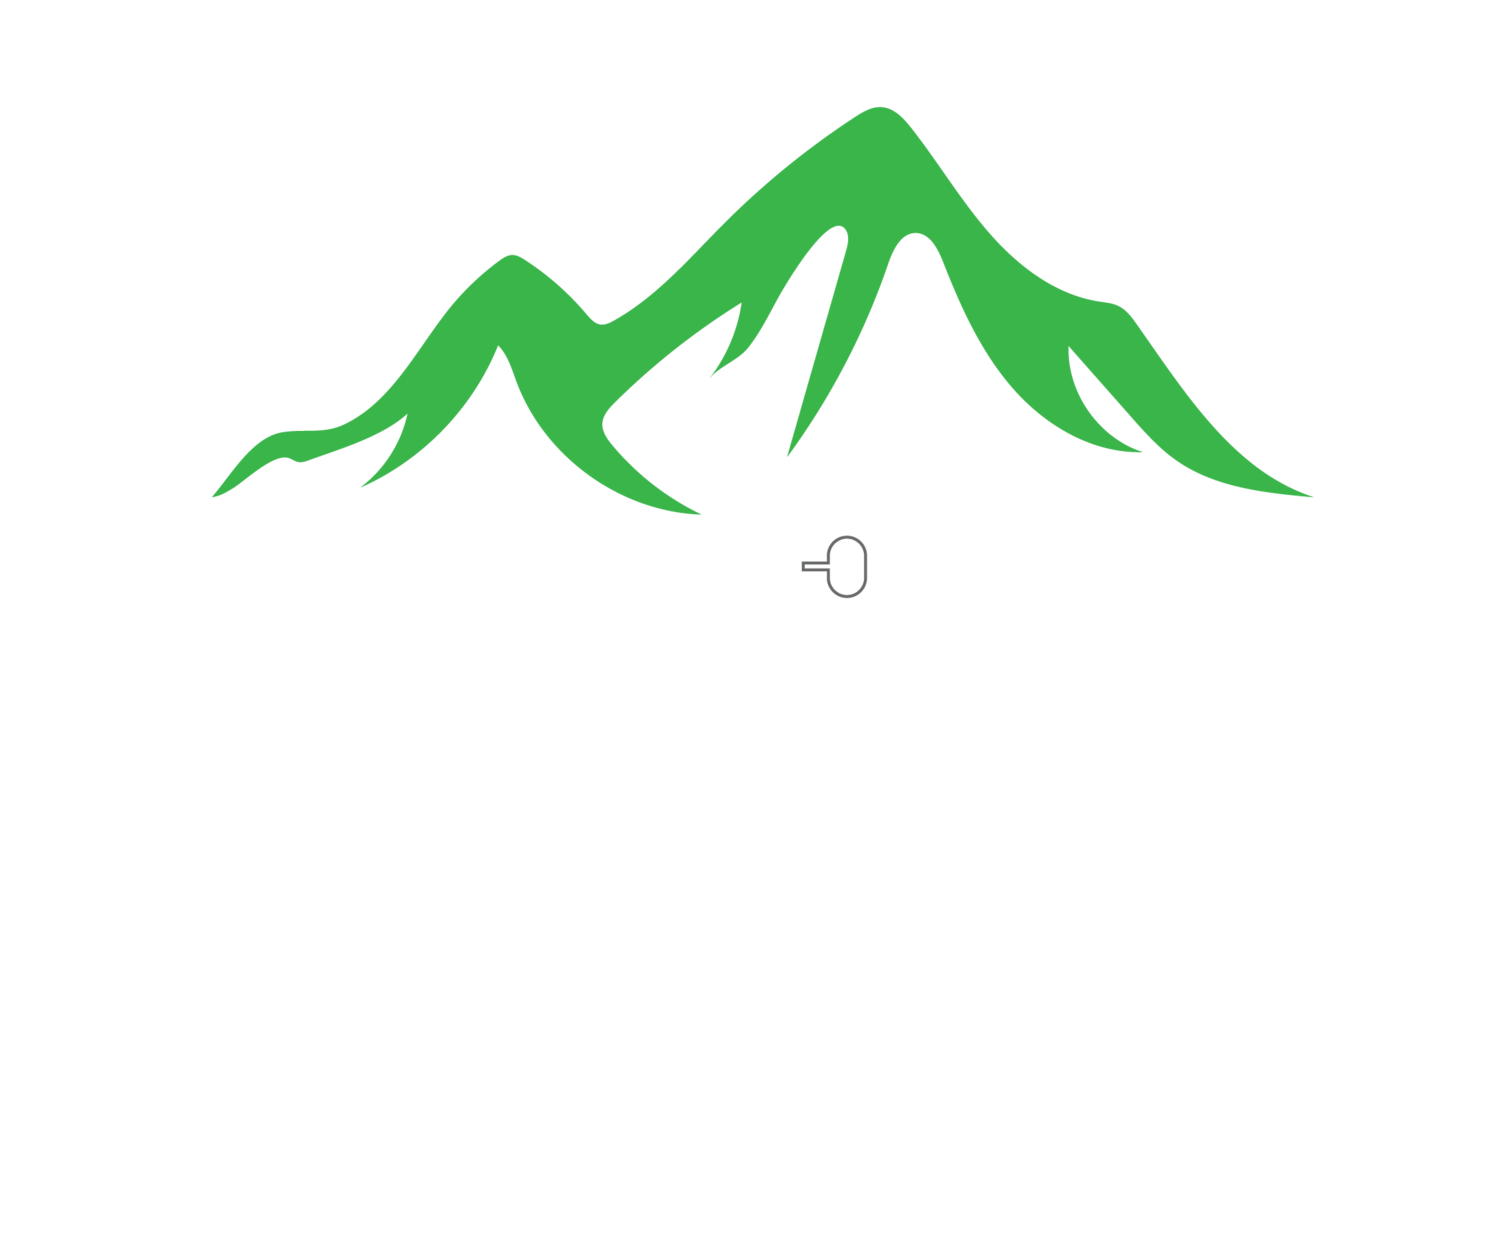 Virtualwalkabouts.com